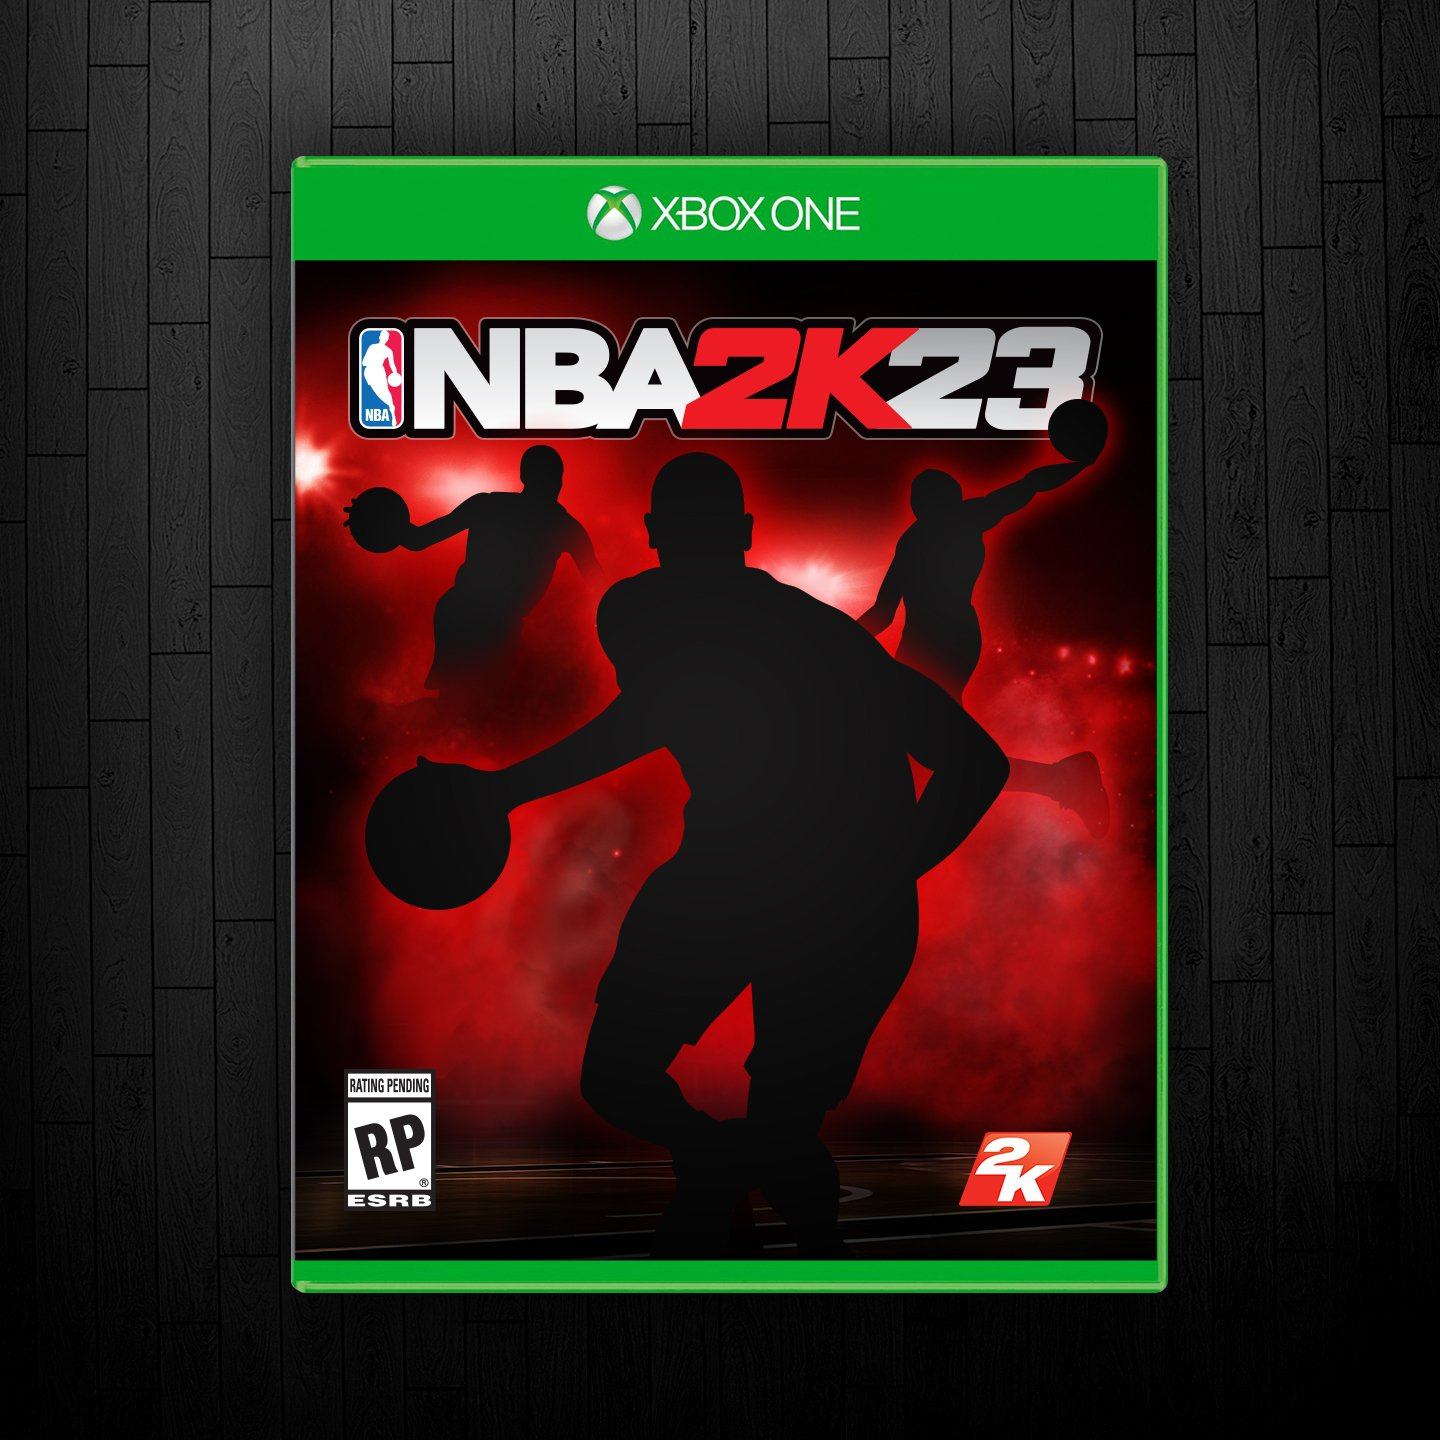 NBA 2K 2K18 On Twitter The NBADraft Begins In A Few Hours Use This Psd File To Mock Up Your